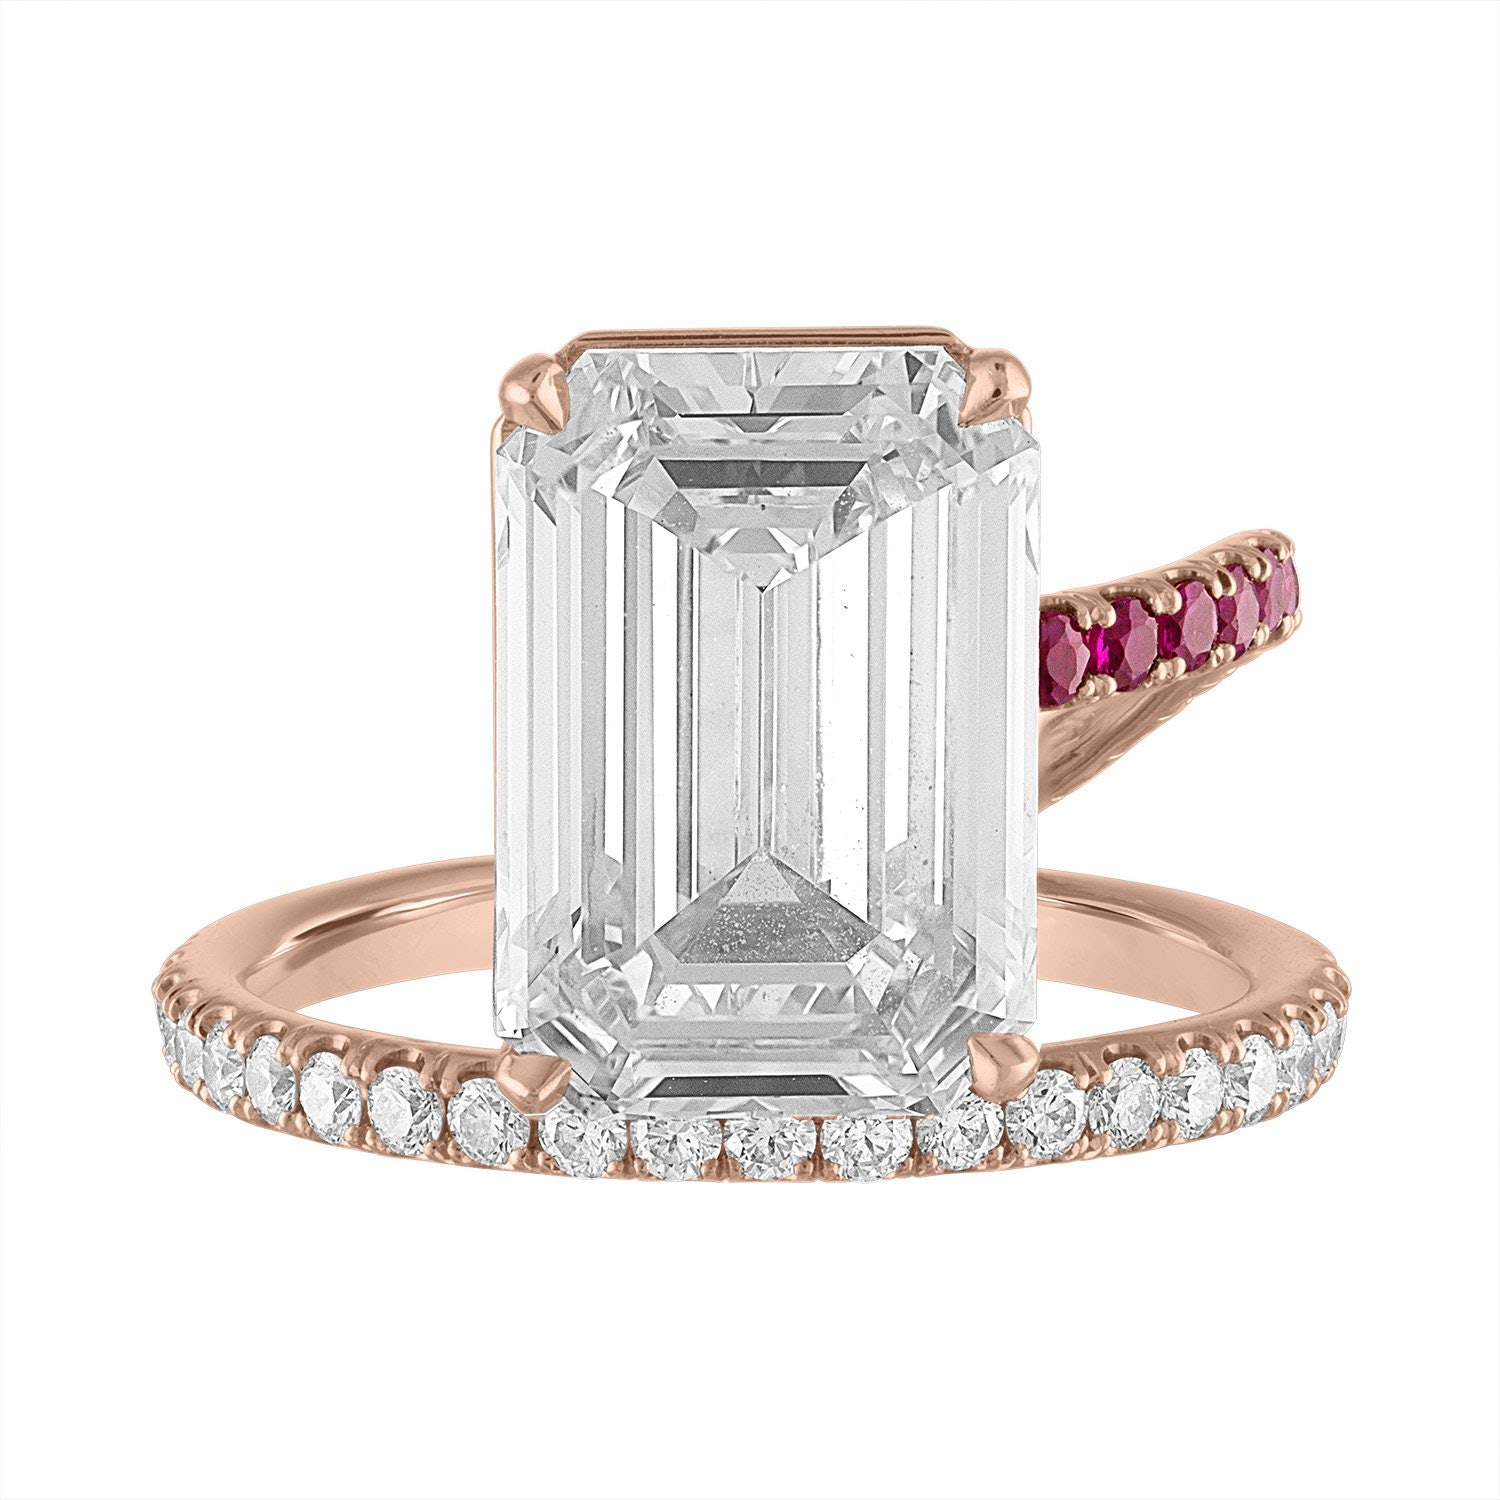 78c6d59a3 The 2019 Engagement Ring Trend You Need To Know Now